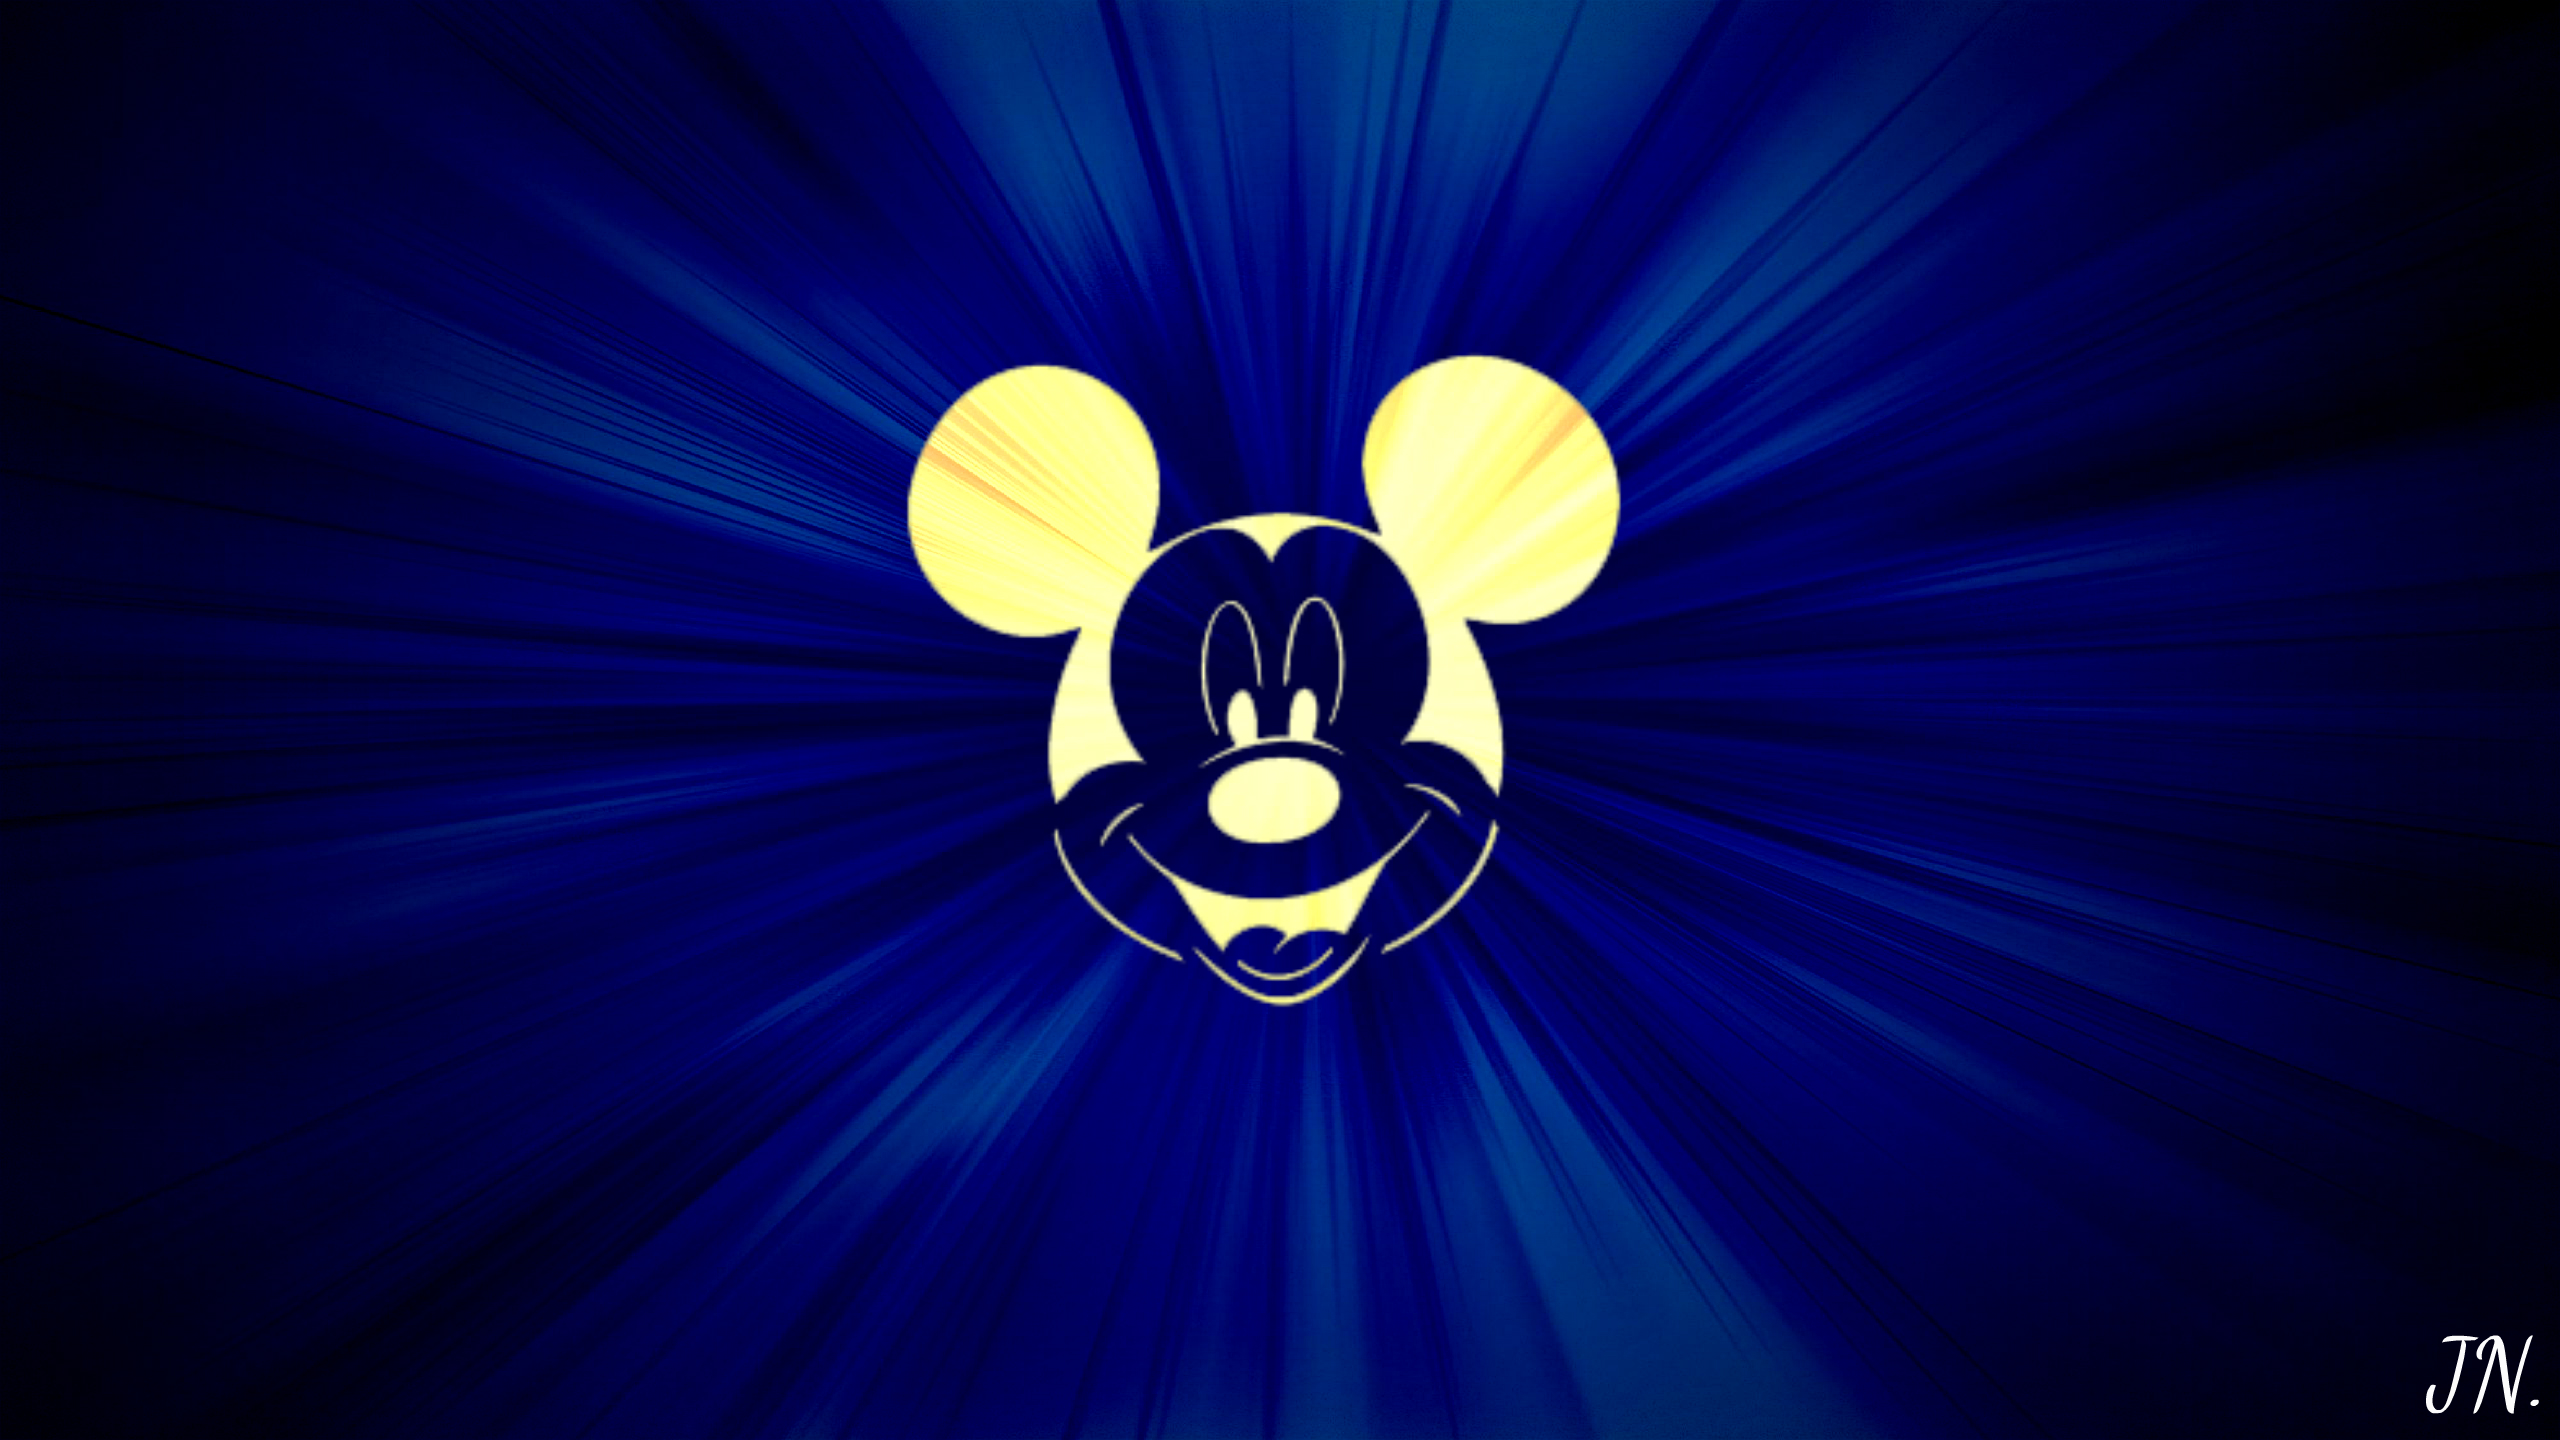 Mickey Mouse Wallpaper by JackNyeTV on DeviantArt